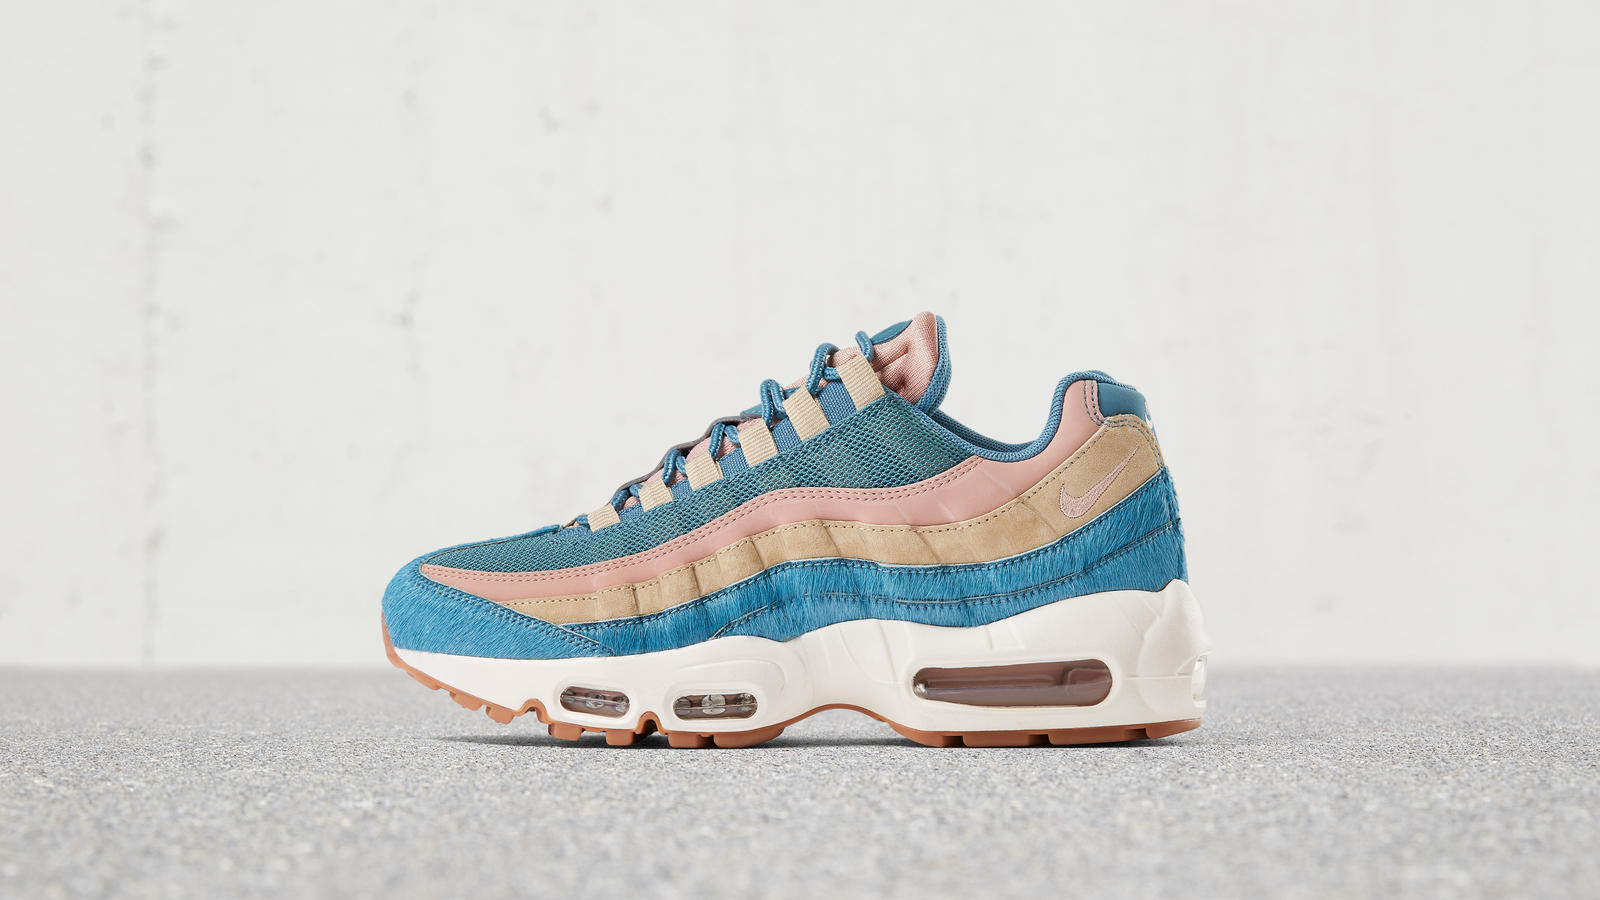 Air max 95 blue fur 3 hd 1600